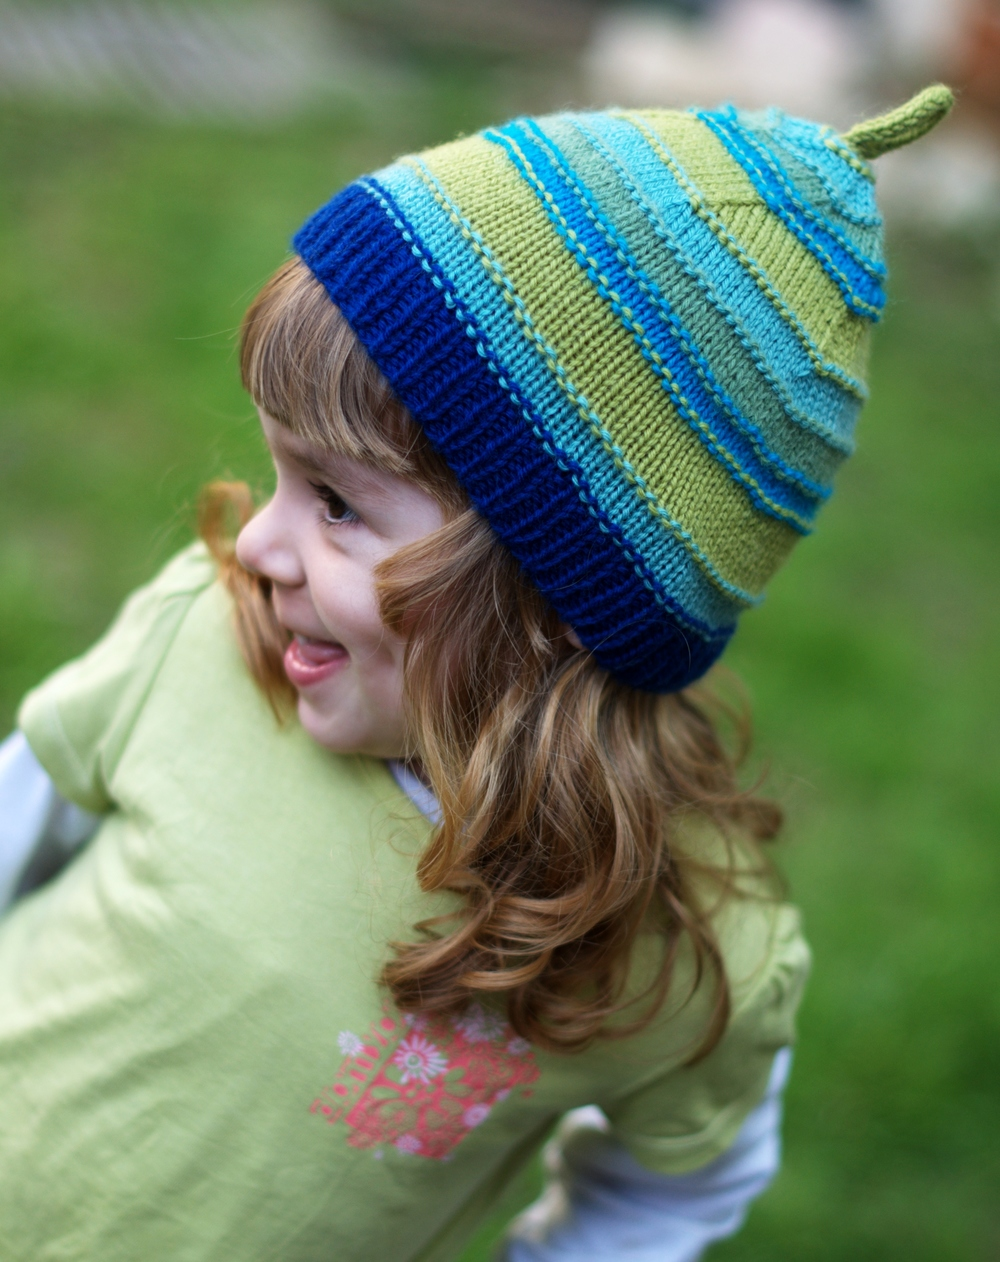 Trullo childs striped pixie hat knitting pattern